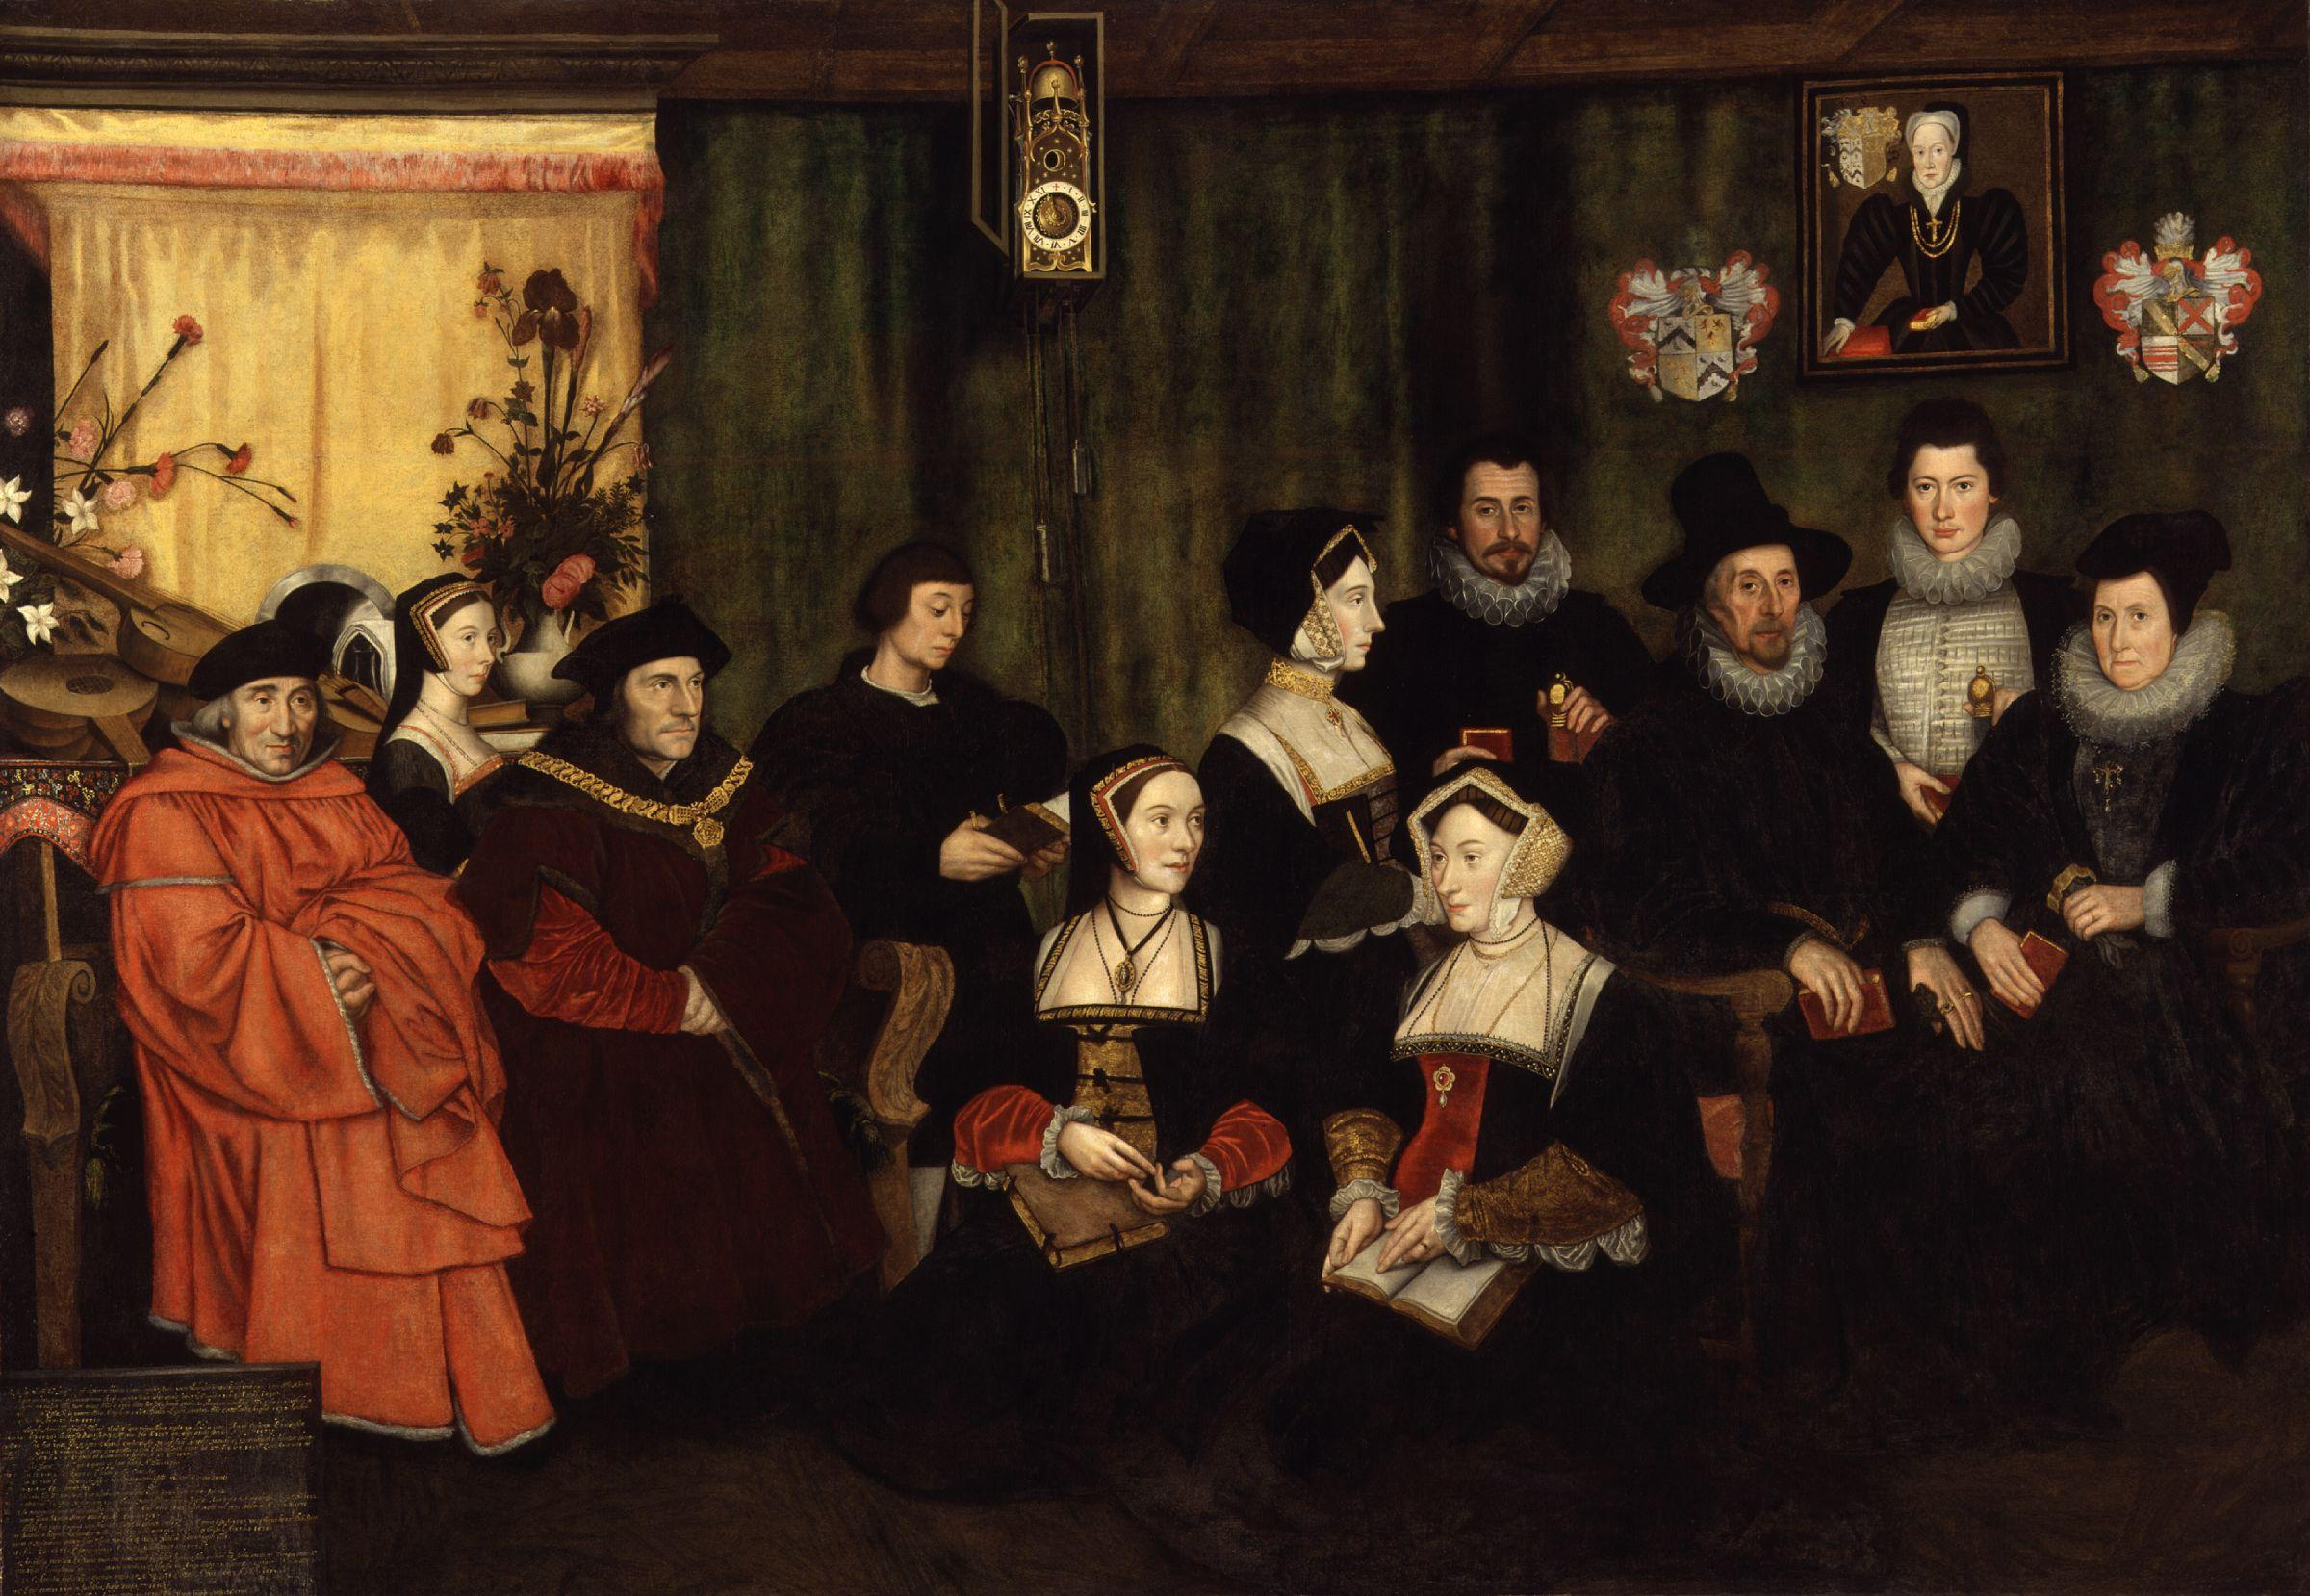 Rowland Lockey, after Hans Holbein the Younger. Sir Thomas More, his father, his household and his descendants